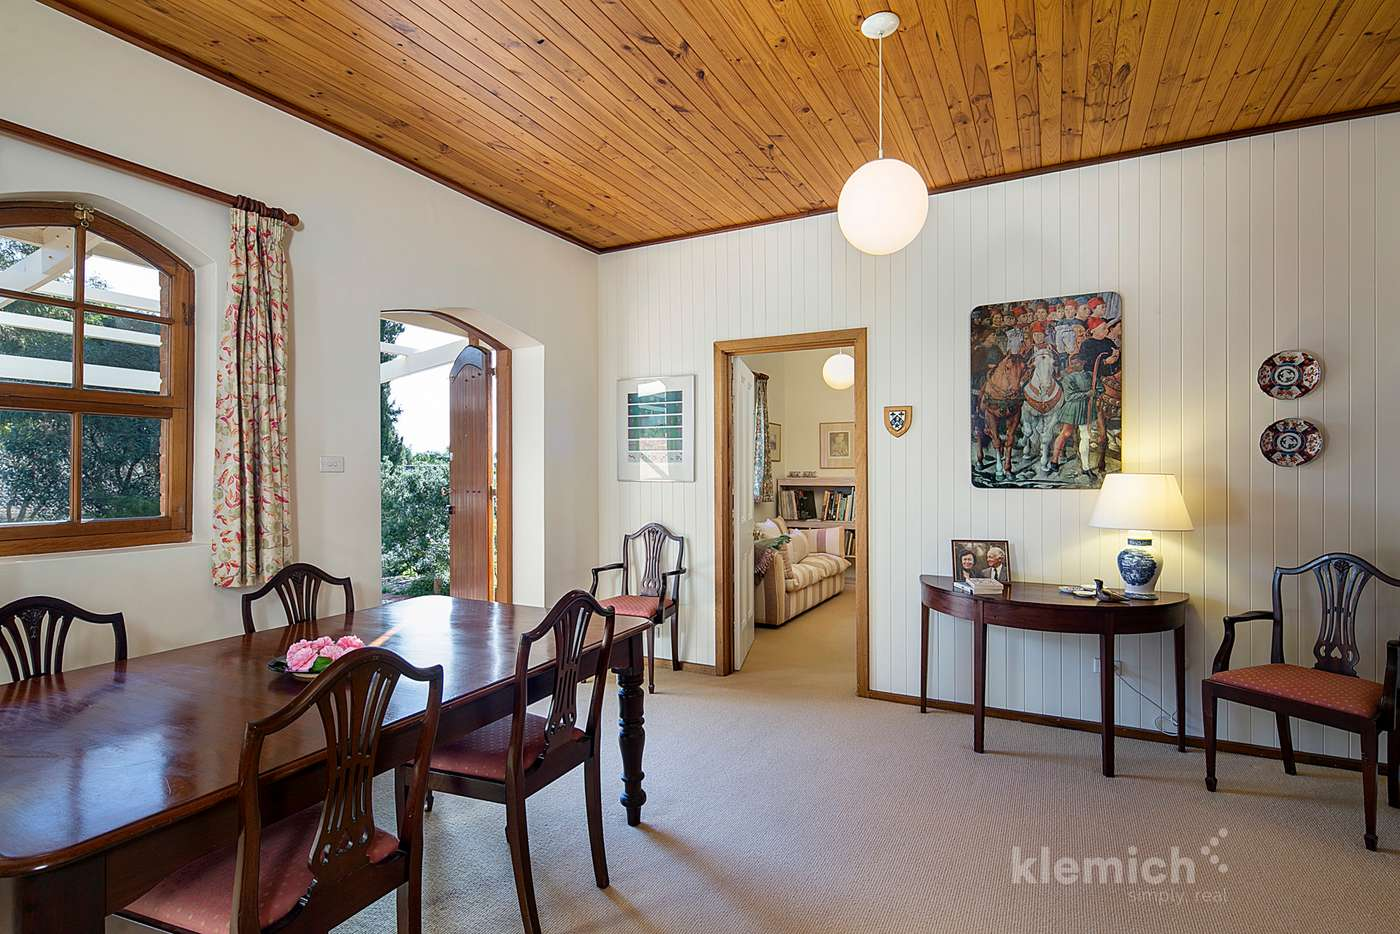 Sixth view of Homely house listing, 32 Carrick Hill Drive, Springfield SA 5062